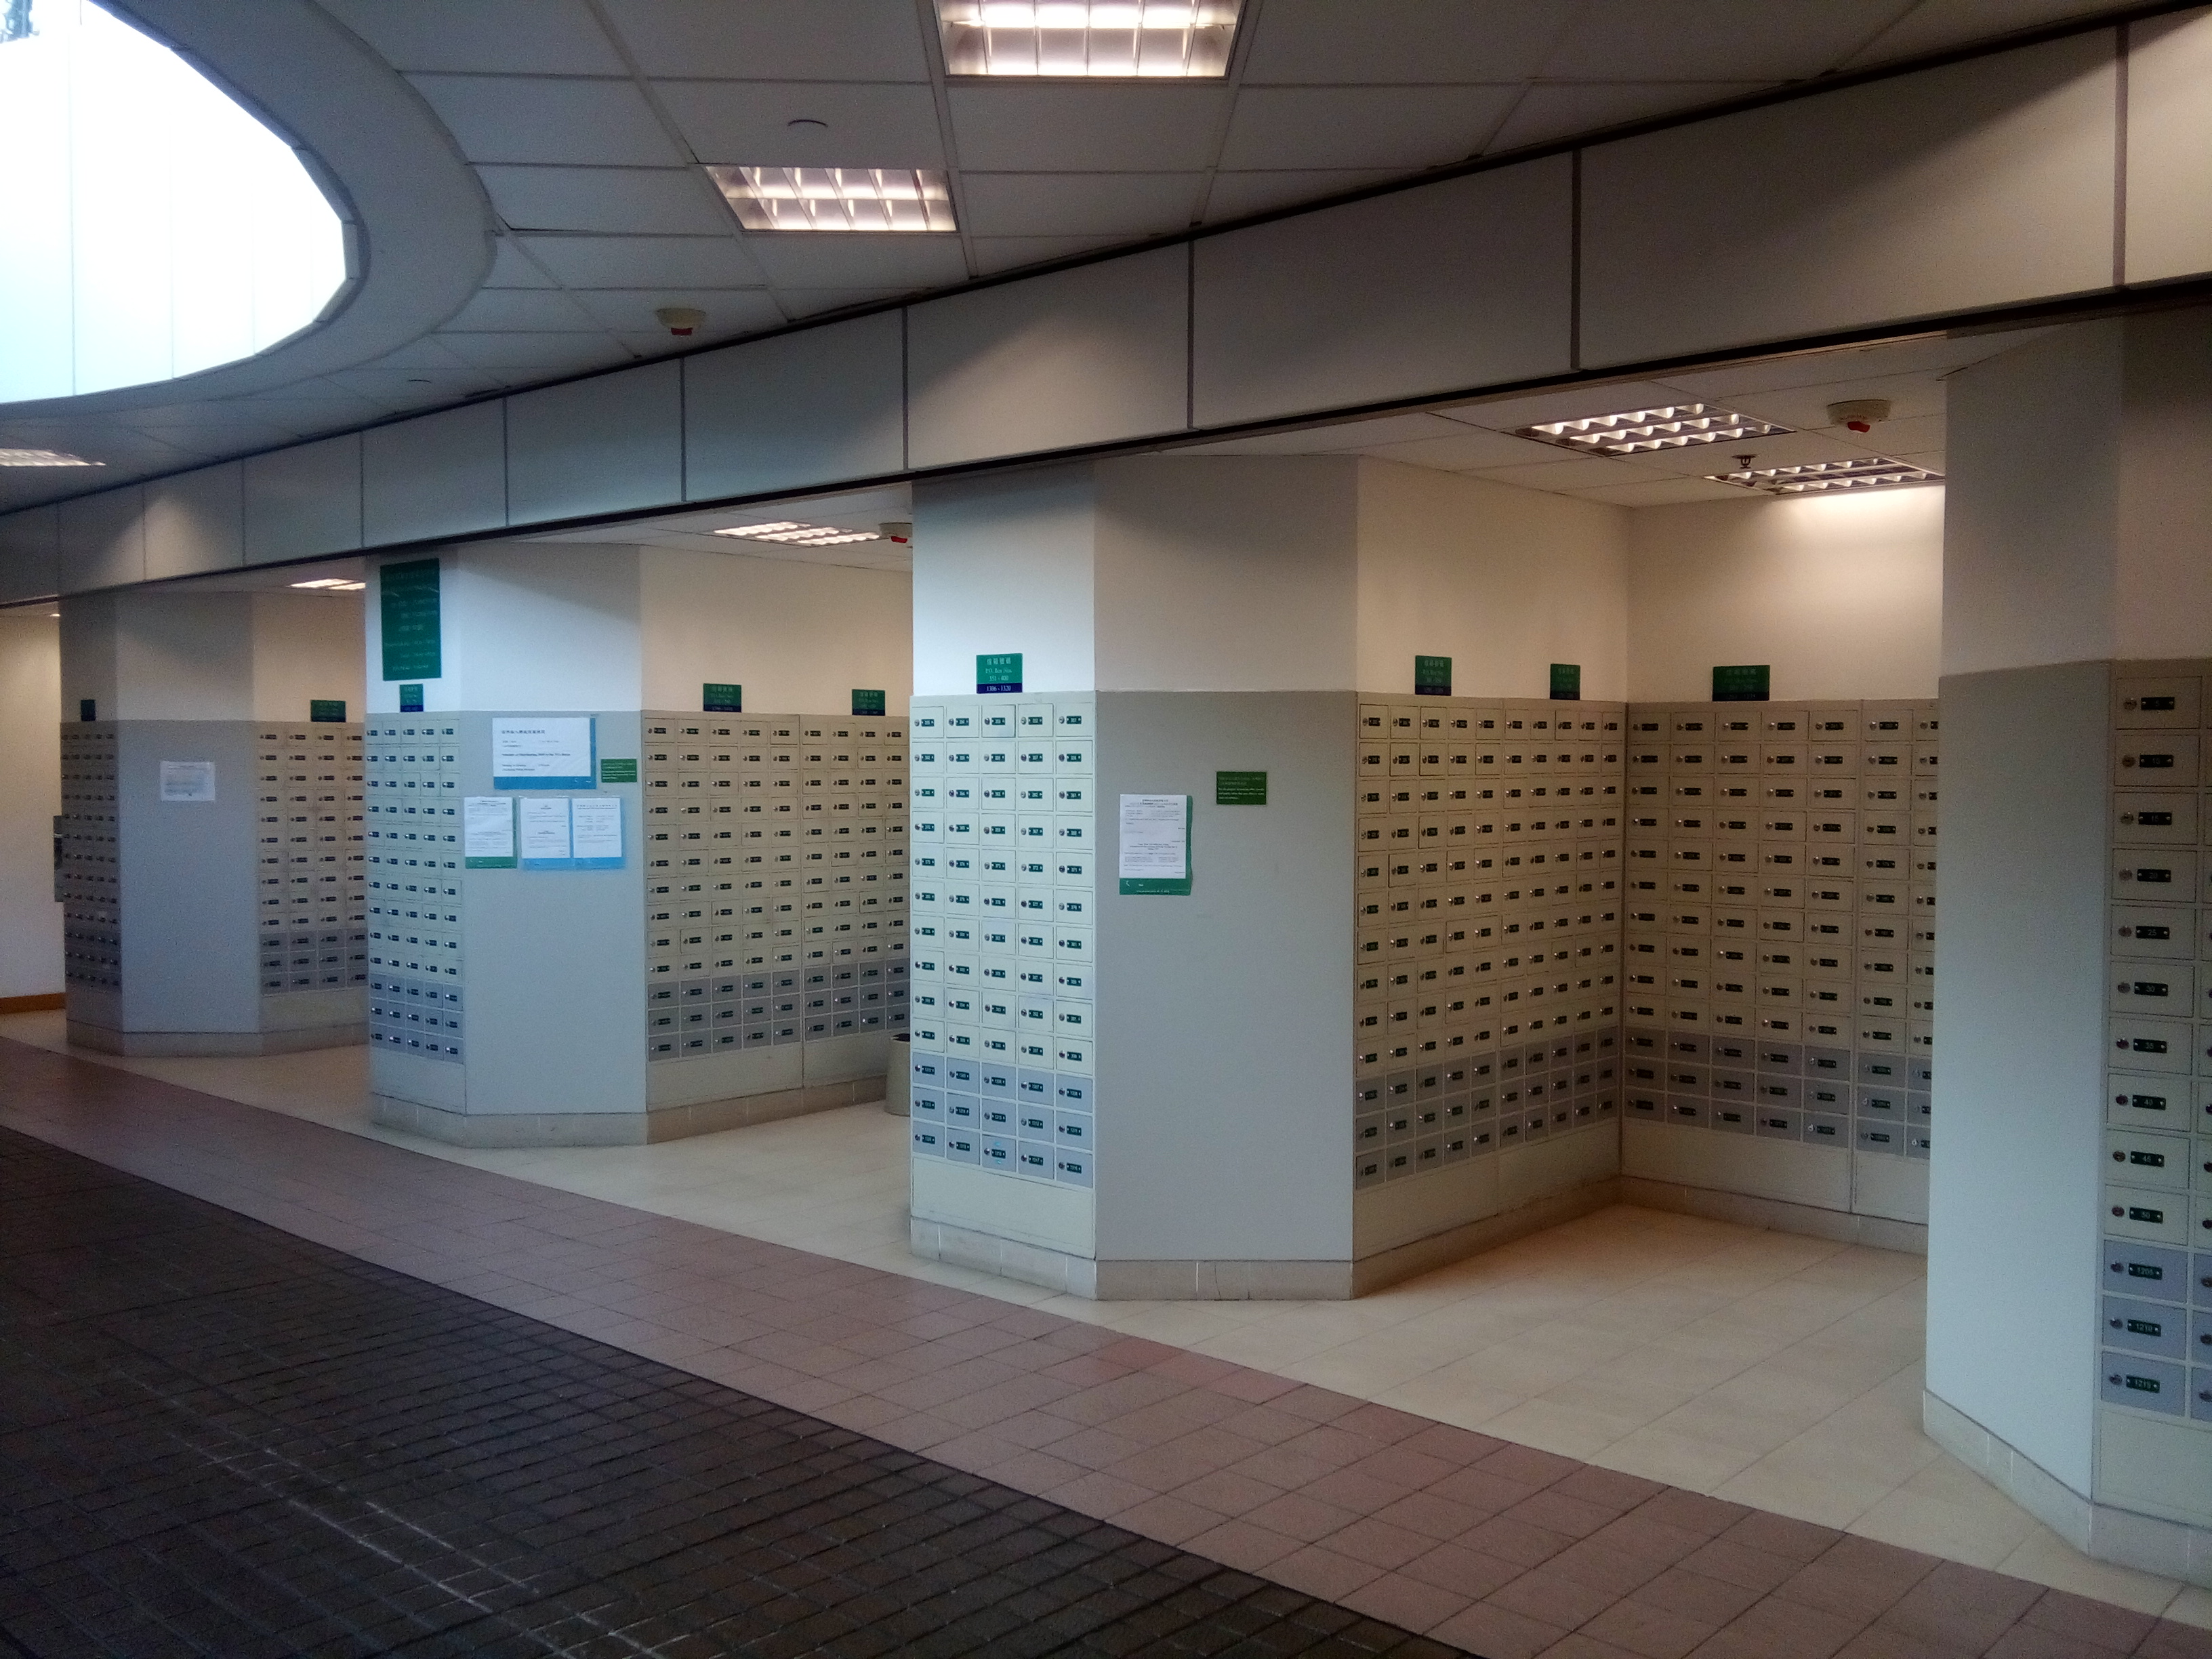 Genial File:HK 荃灣郵政局 Tsuen Wan Post Office N Government Office Interior Mailbox  Zone Jan